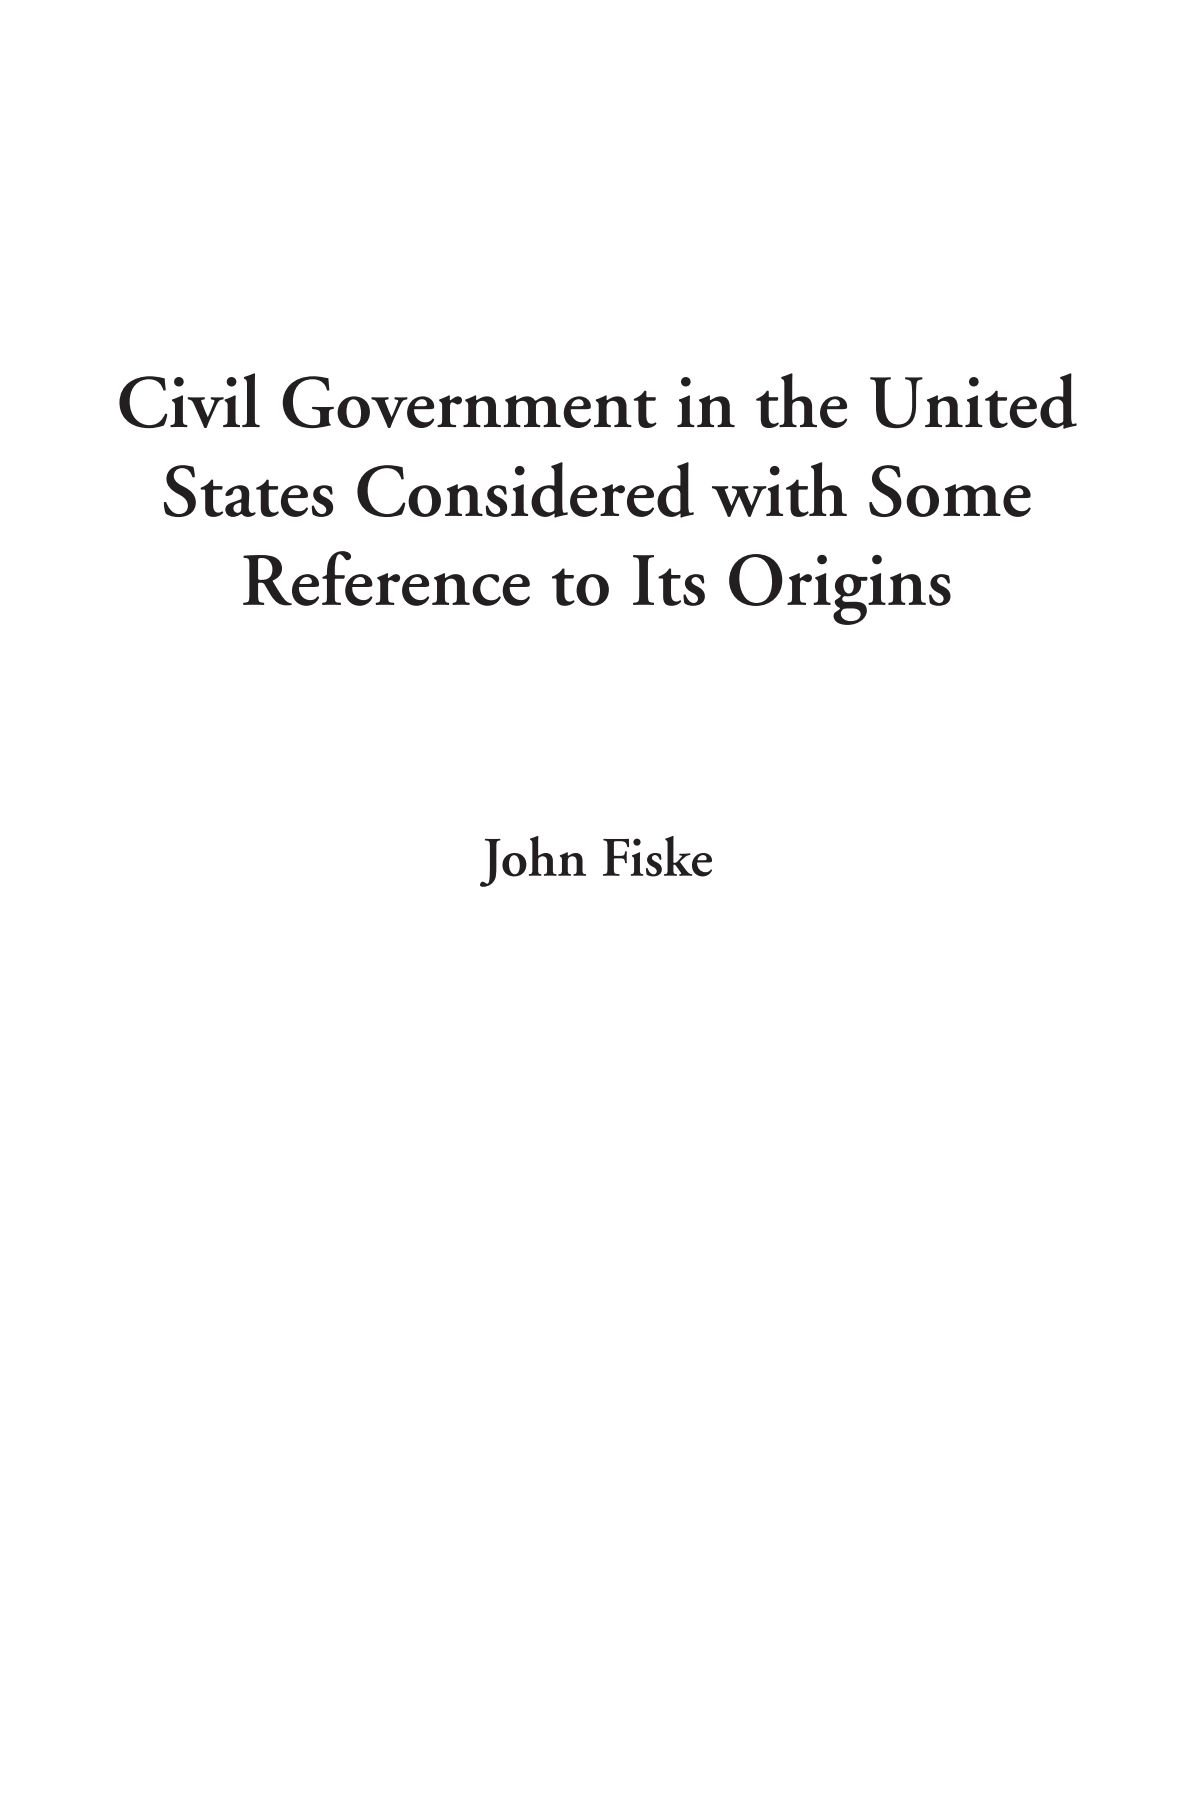 Download Civil Government in the United States Considered with Some Reference to Its Origins PDF